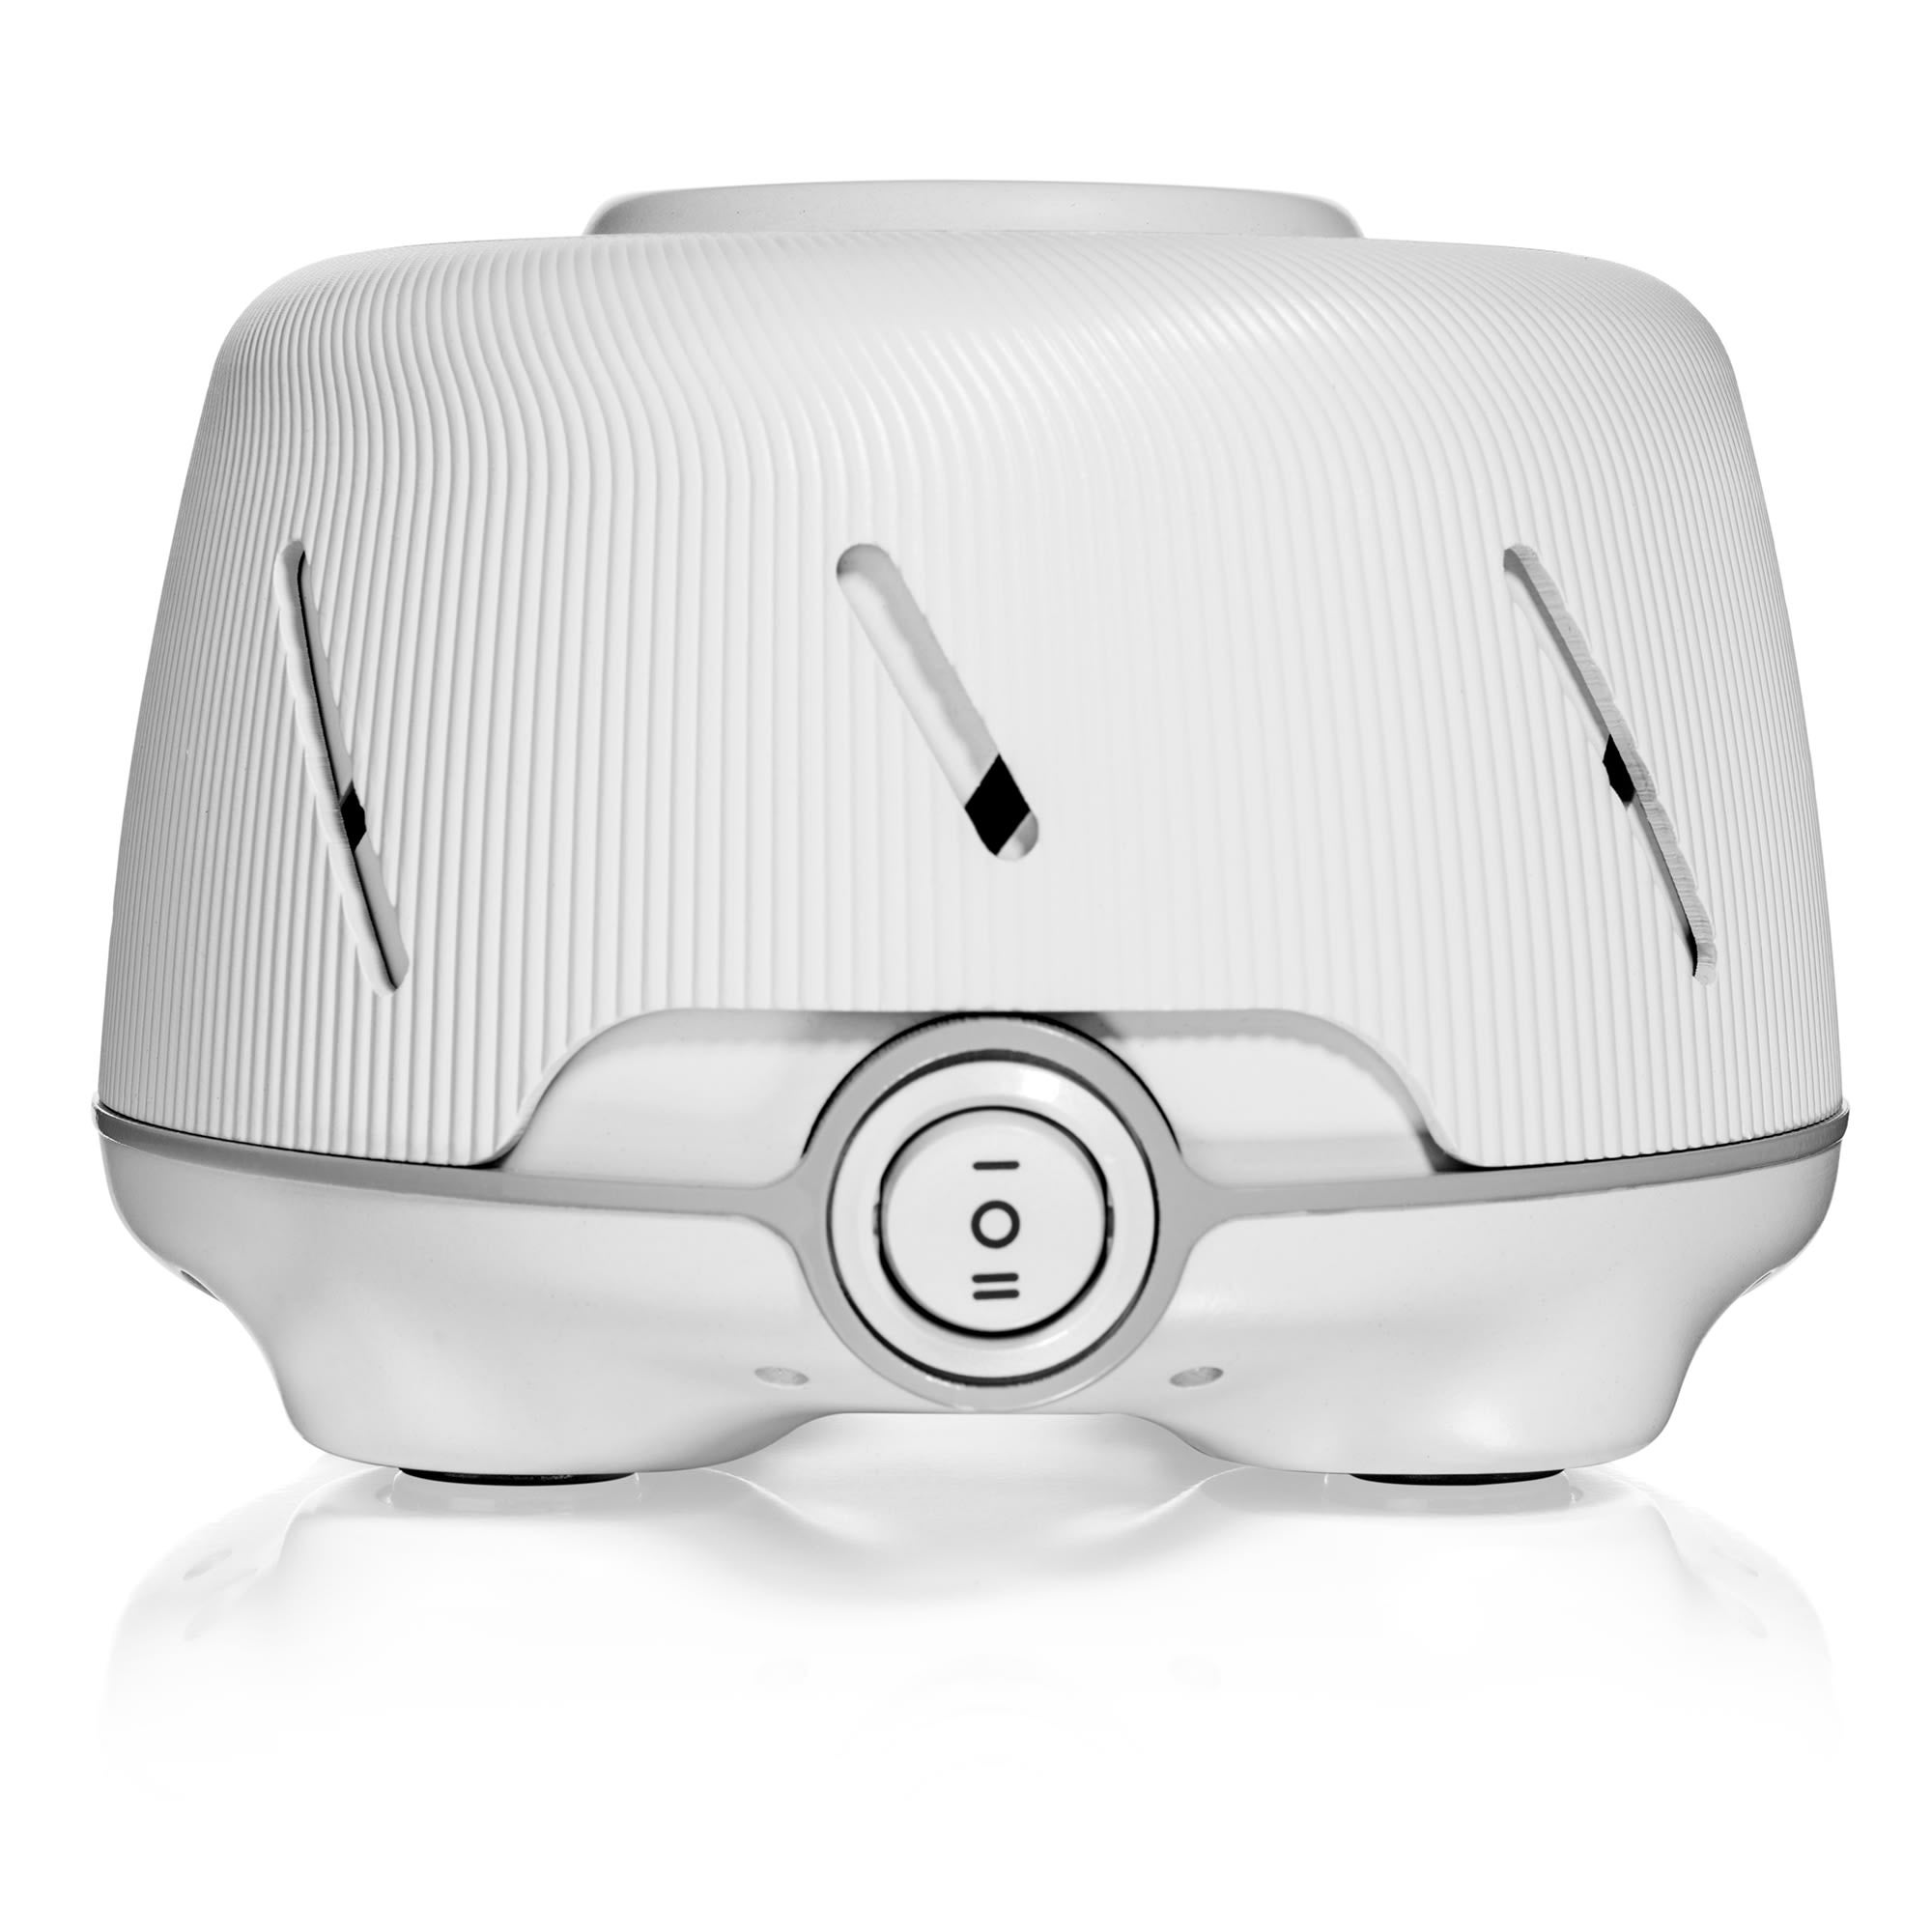 Yogasleep Dohm Natural Sound Machine in White with grey finishes. Flip power switch on front.